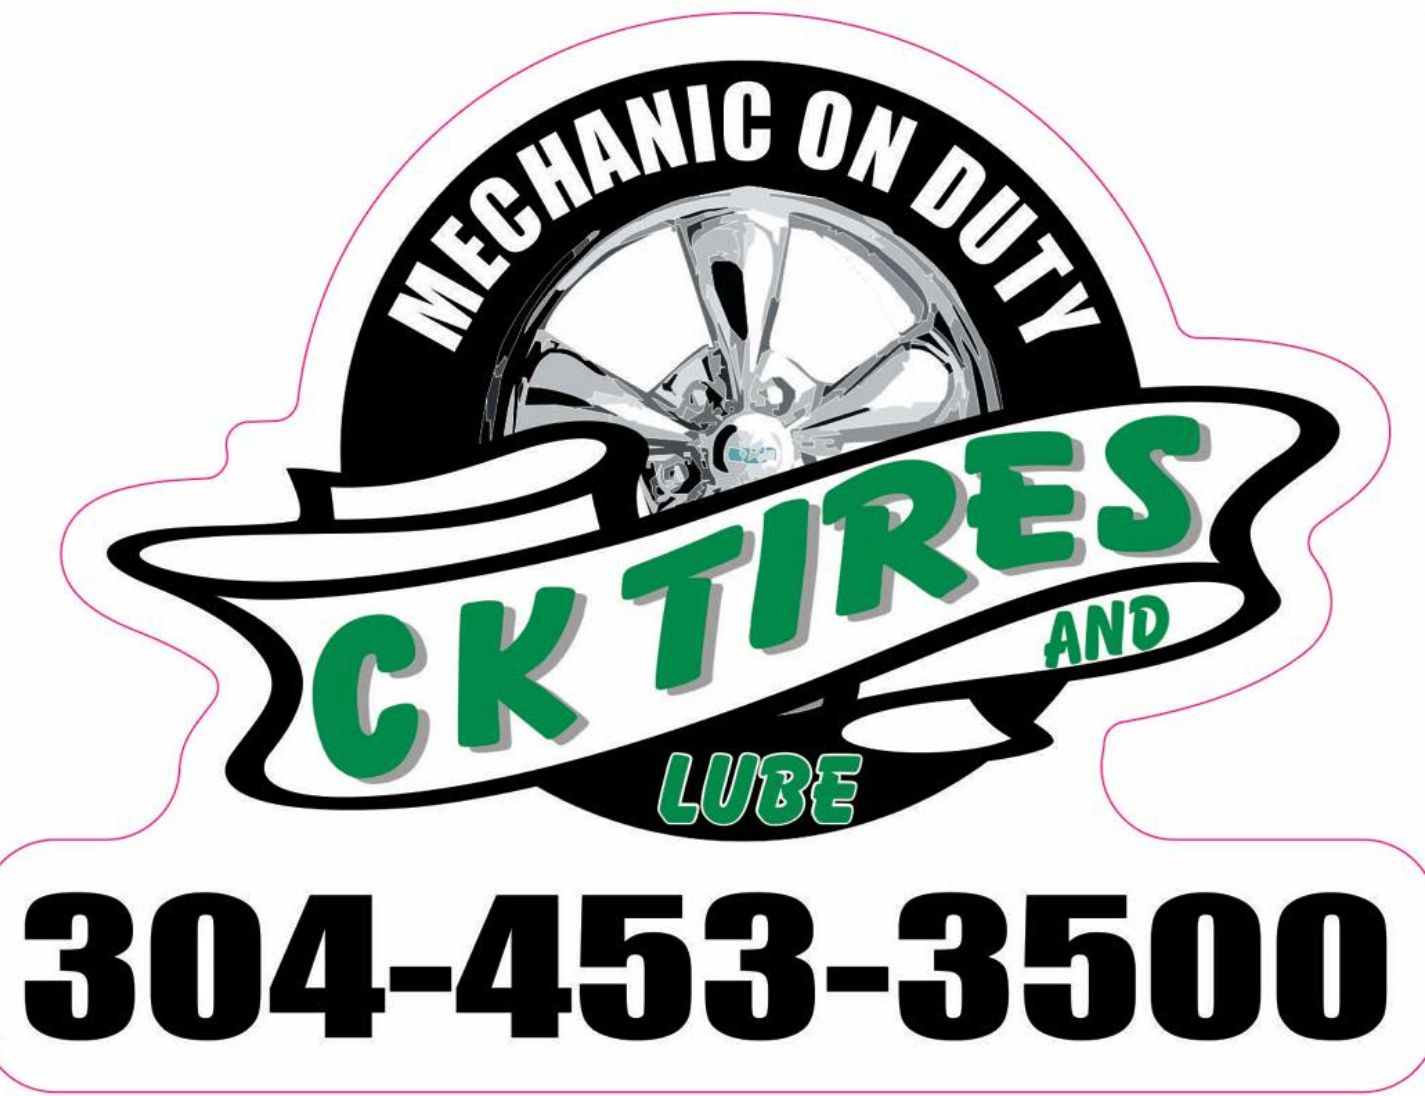 C K Tires & Lube | Best Place For Tires In The TriState  304-453-3500 Monday Thru Friday 8 To 5 Saturday By Appointment